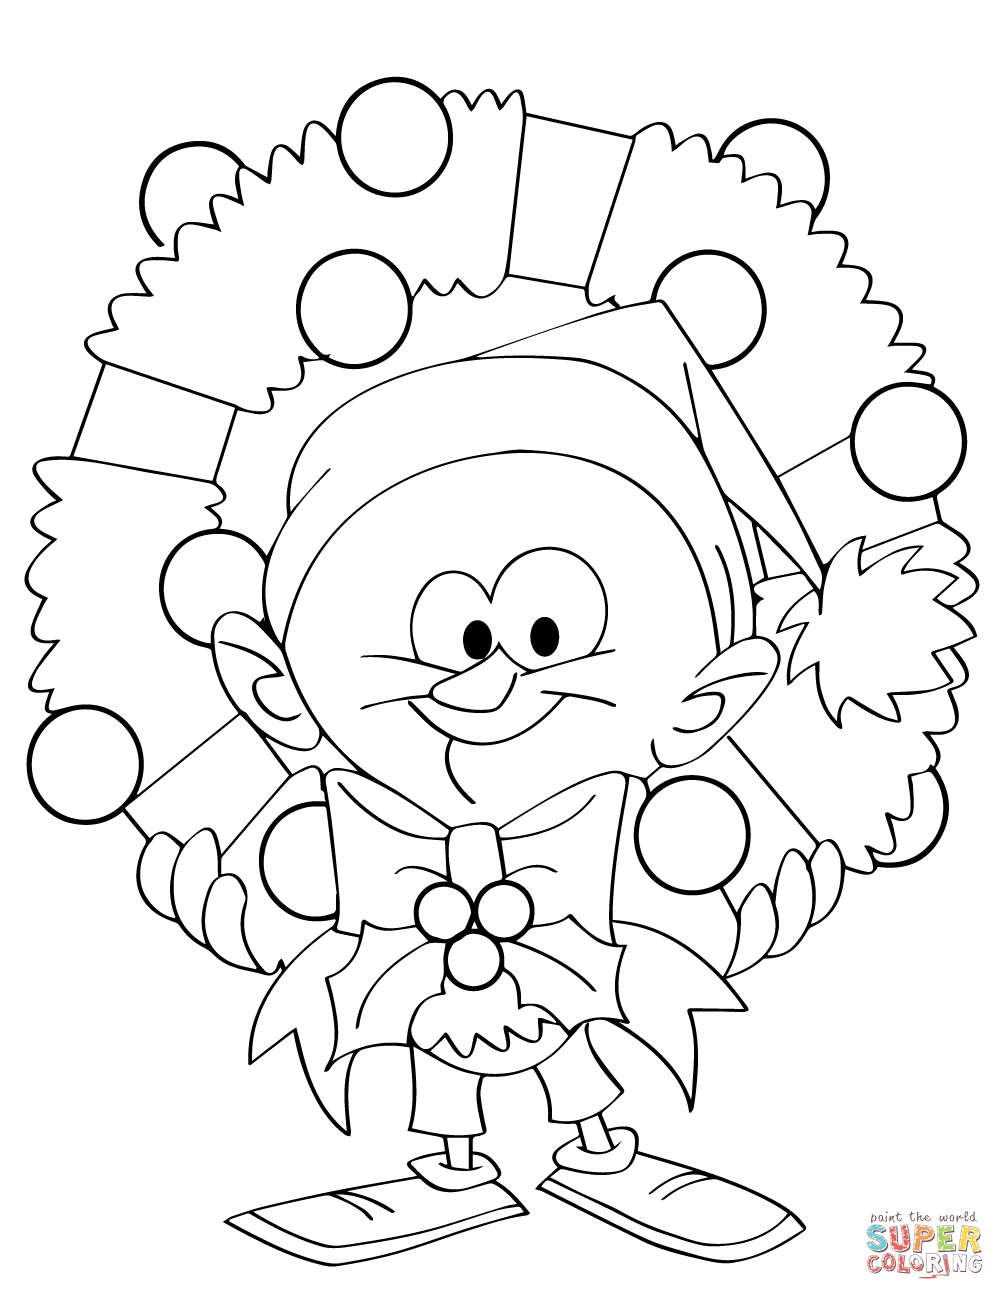 Cartoon Guy Holding Christmas Wreath Coloring Page Free